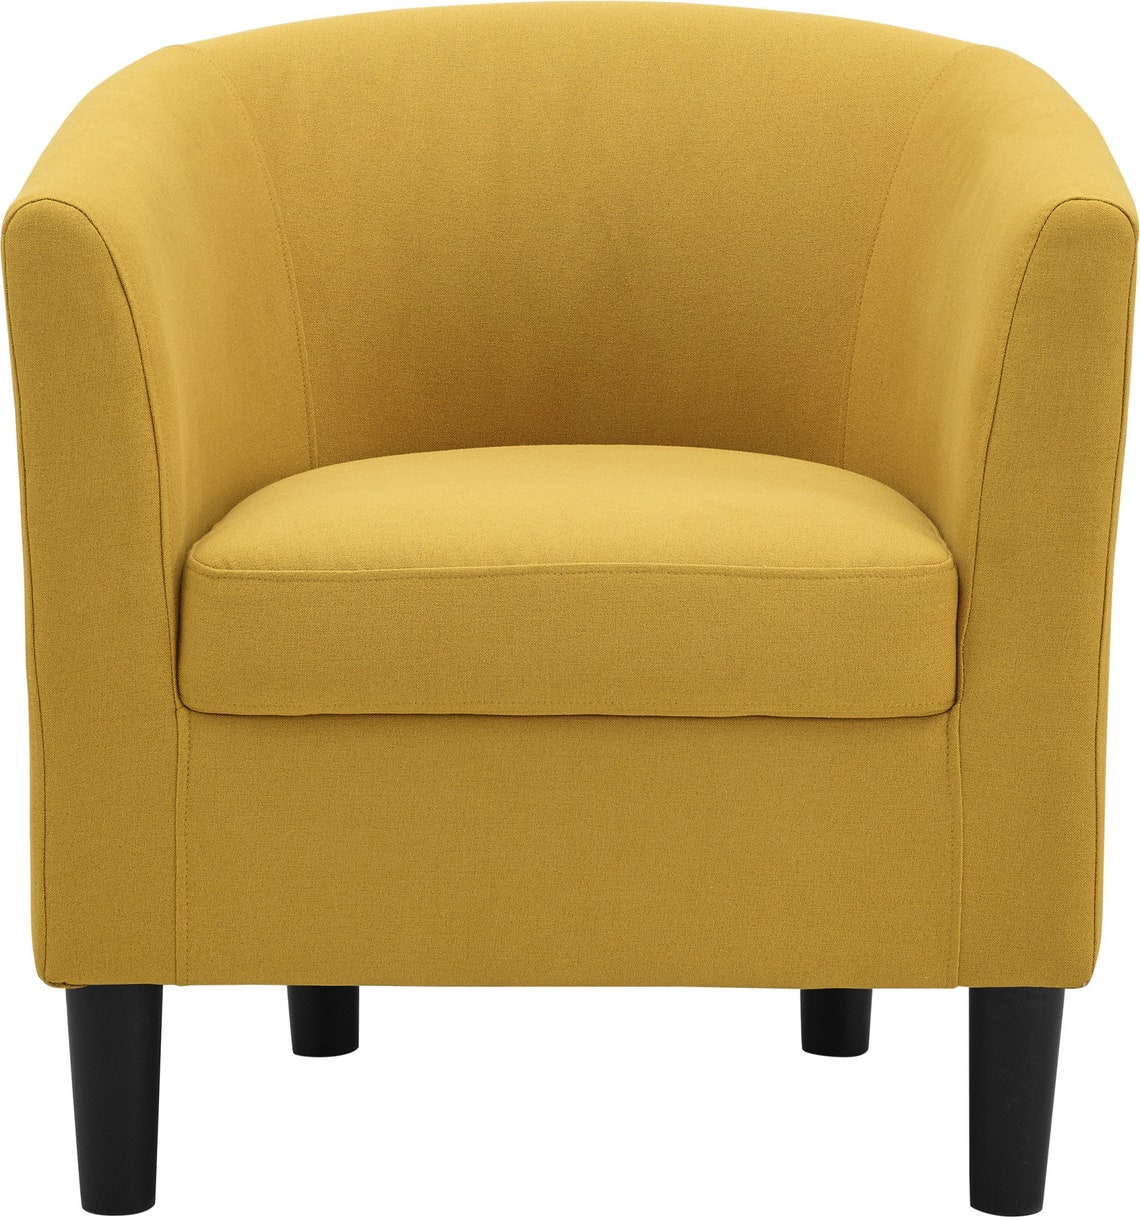 Accent Chair with Curved Back  Ottoman Club Seat Armchair Modern Armrest USA